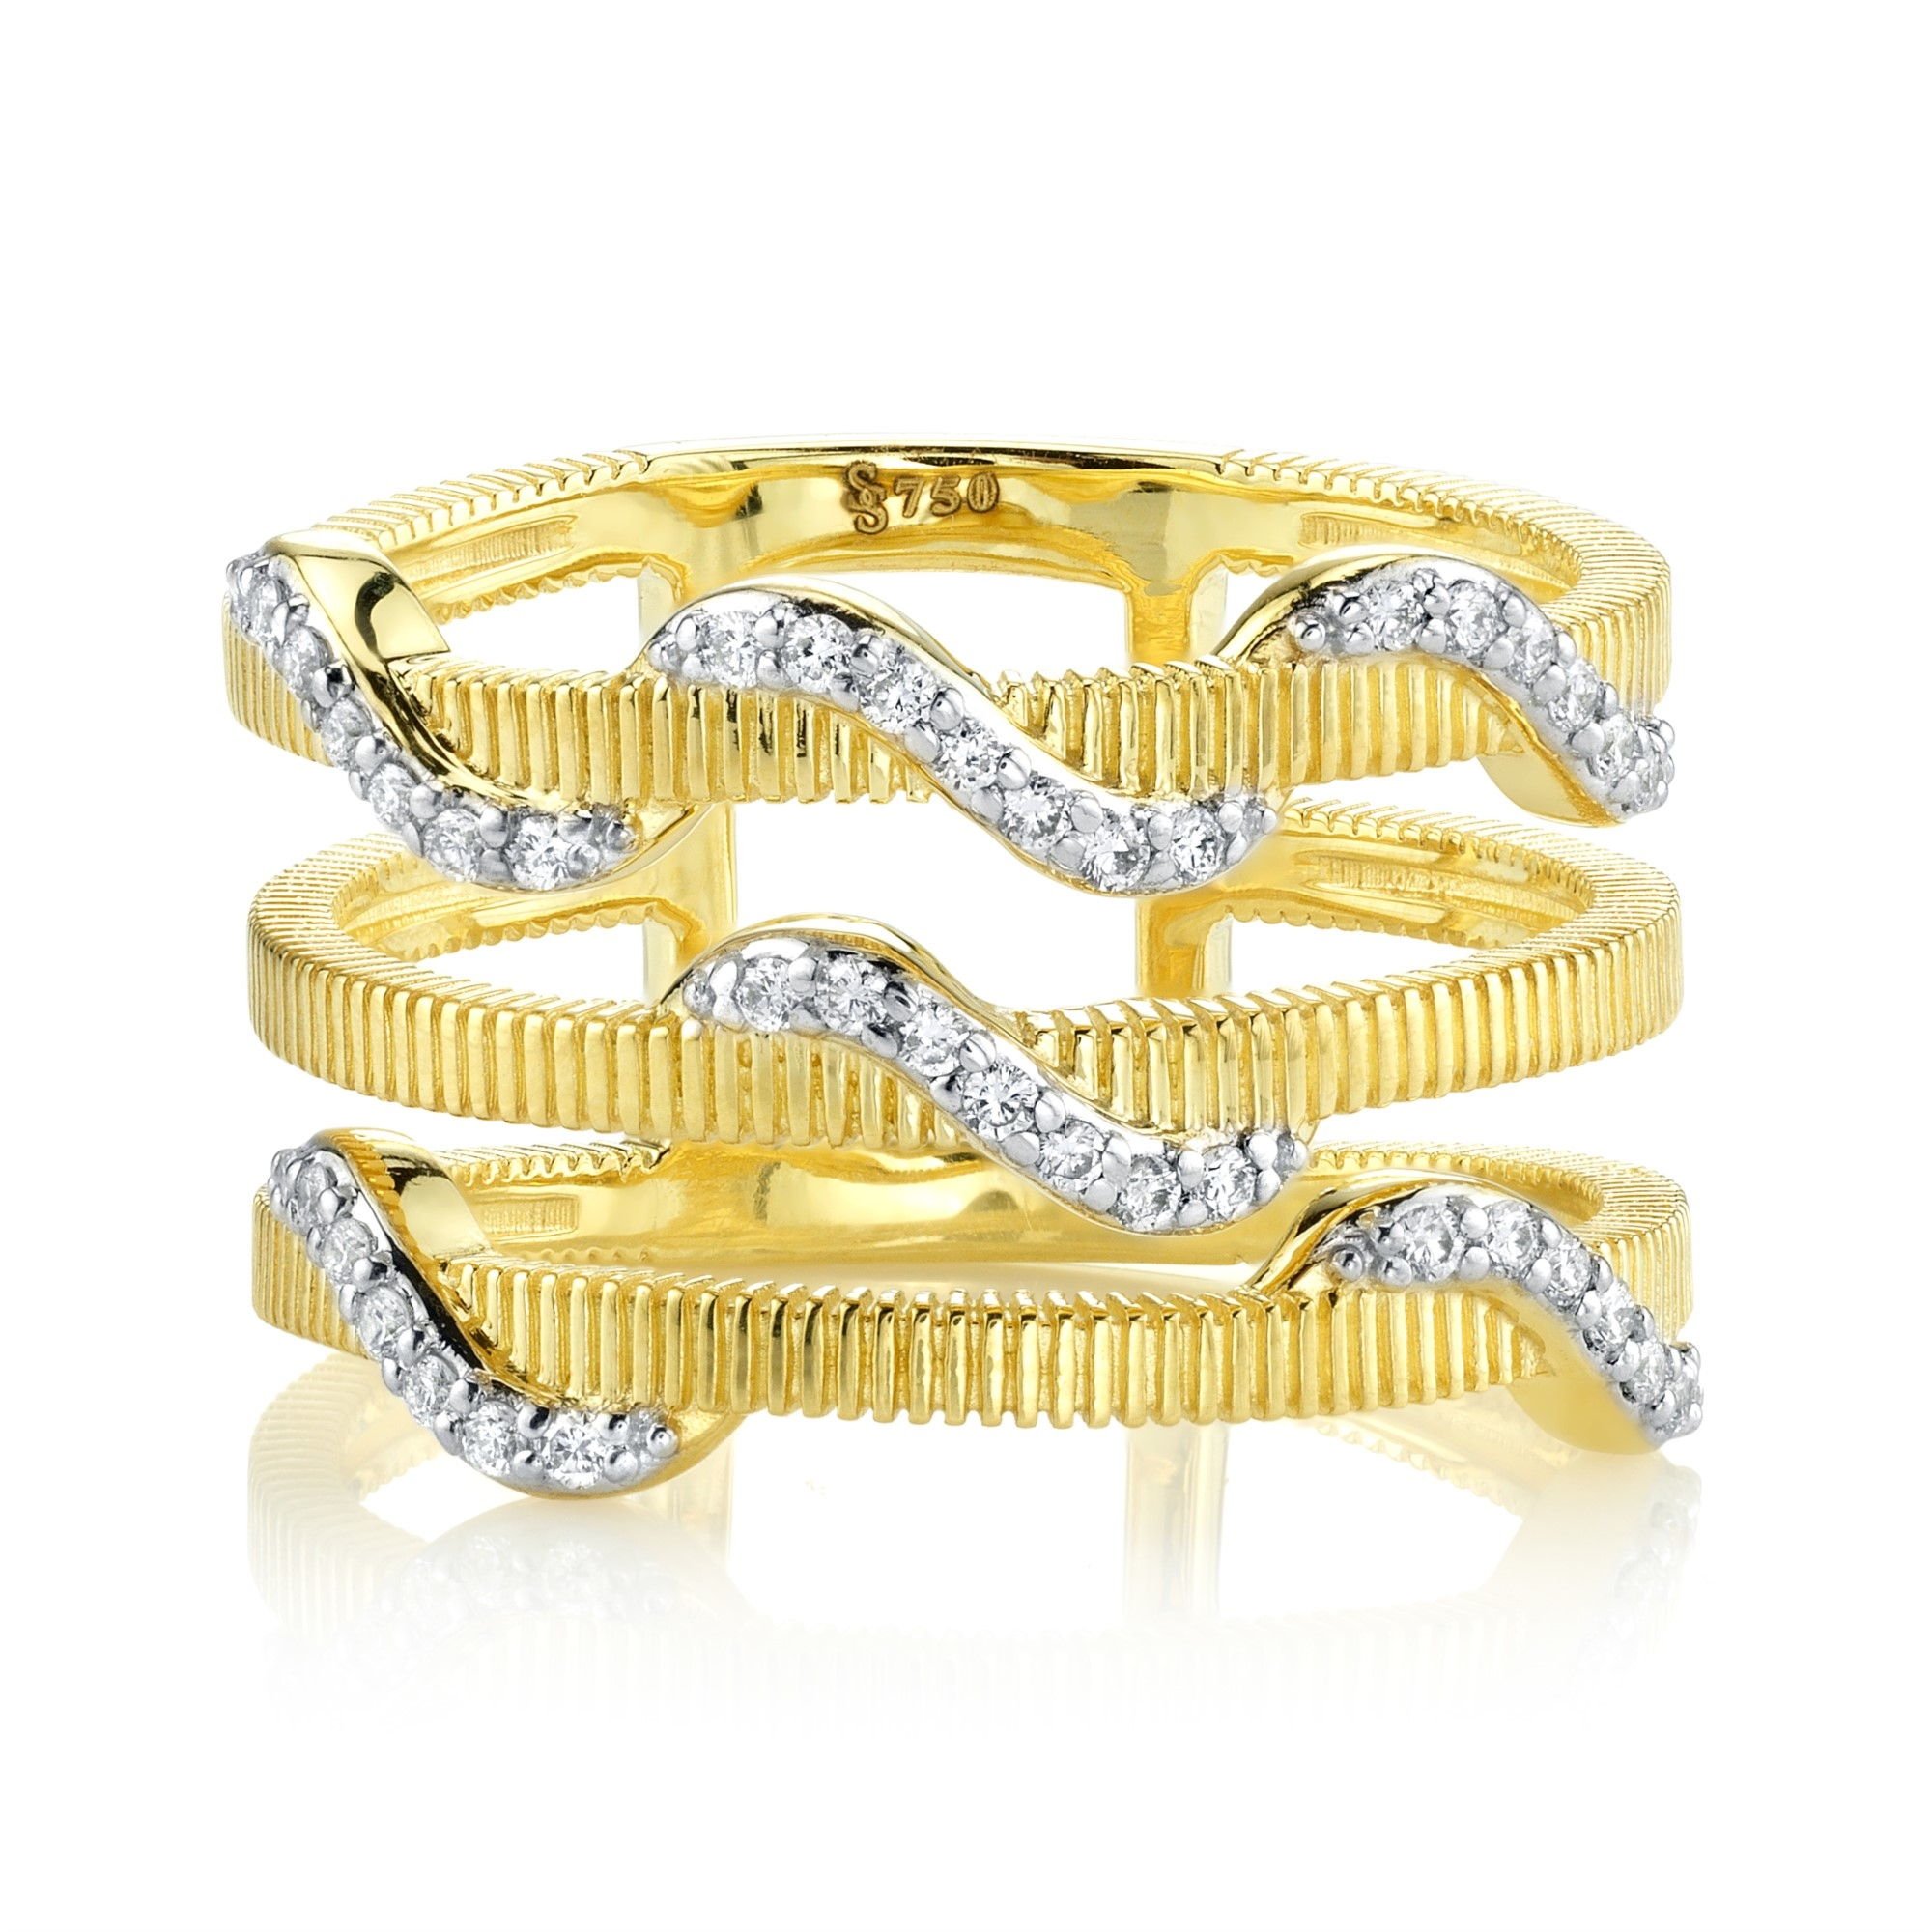 Sloane Street 18K Yellow Gold .21ct  Diamonds Gold Ring with Stones R010F-WDCB-Y